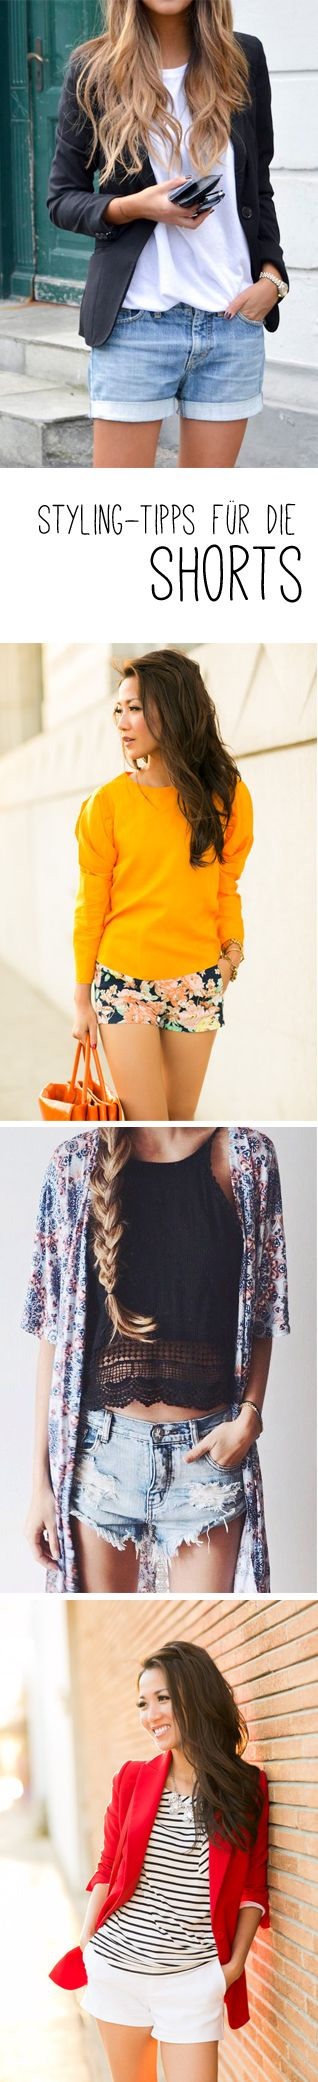 Styling tips for shorts